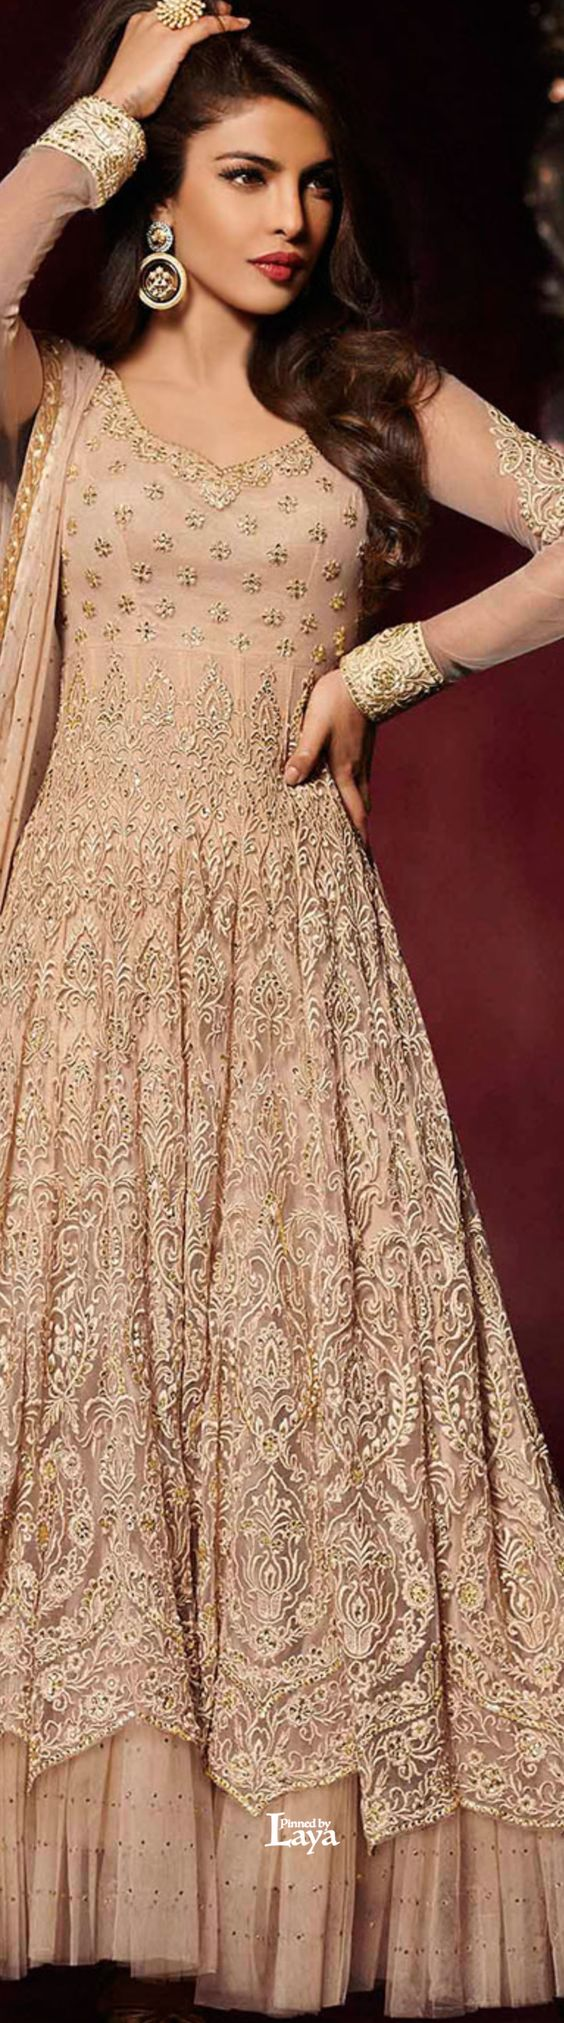 Latest Party Wear & Fancy Wedding Frock Designs Collection 2016-2017 (17)